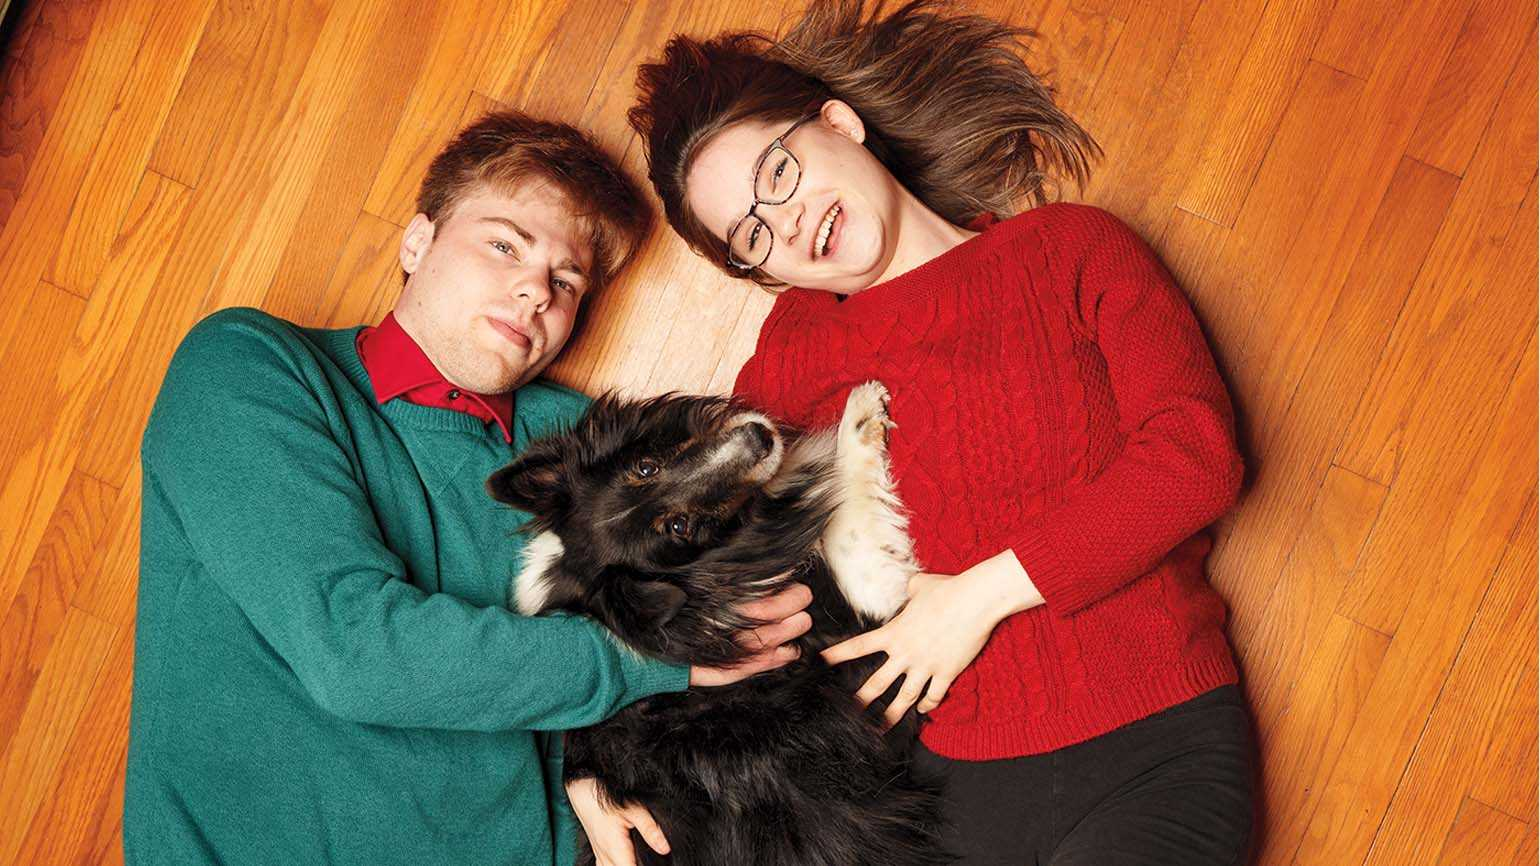 Aaron and Audra with Rusty; Photo credit: Todd Plitt